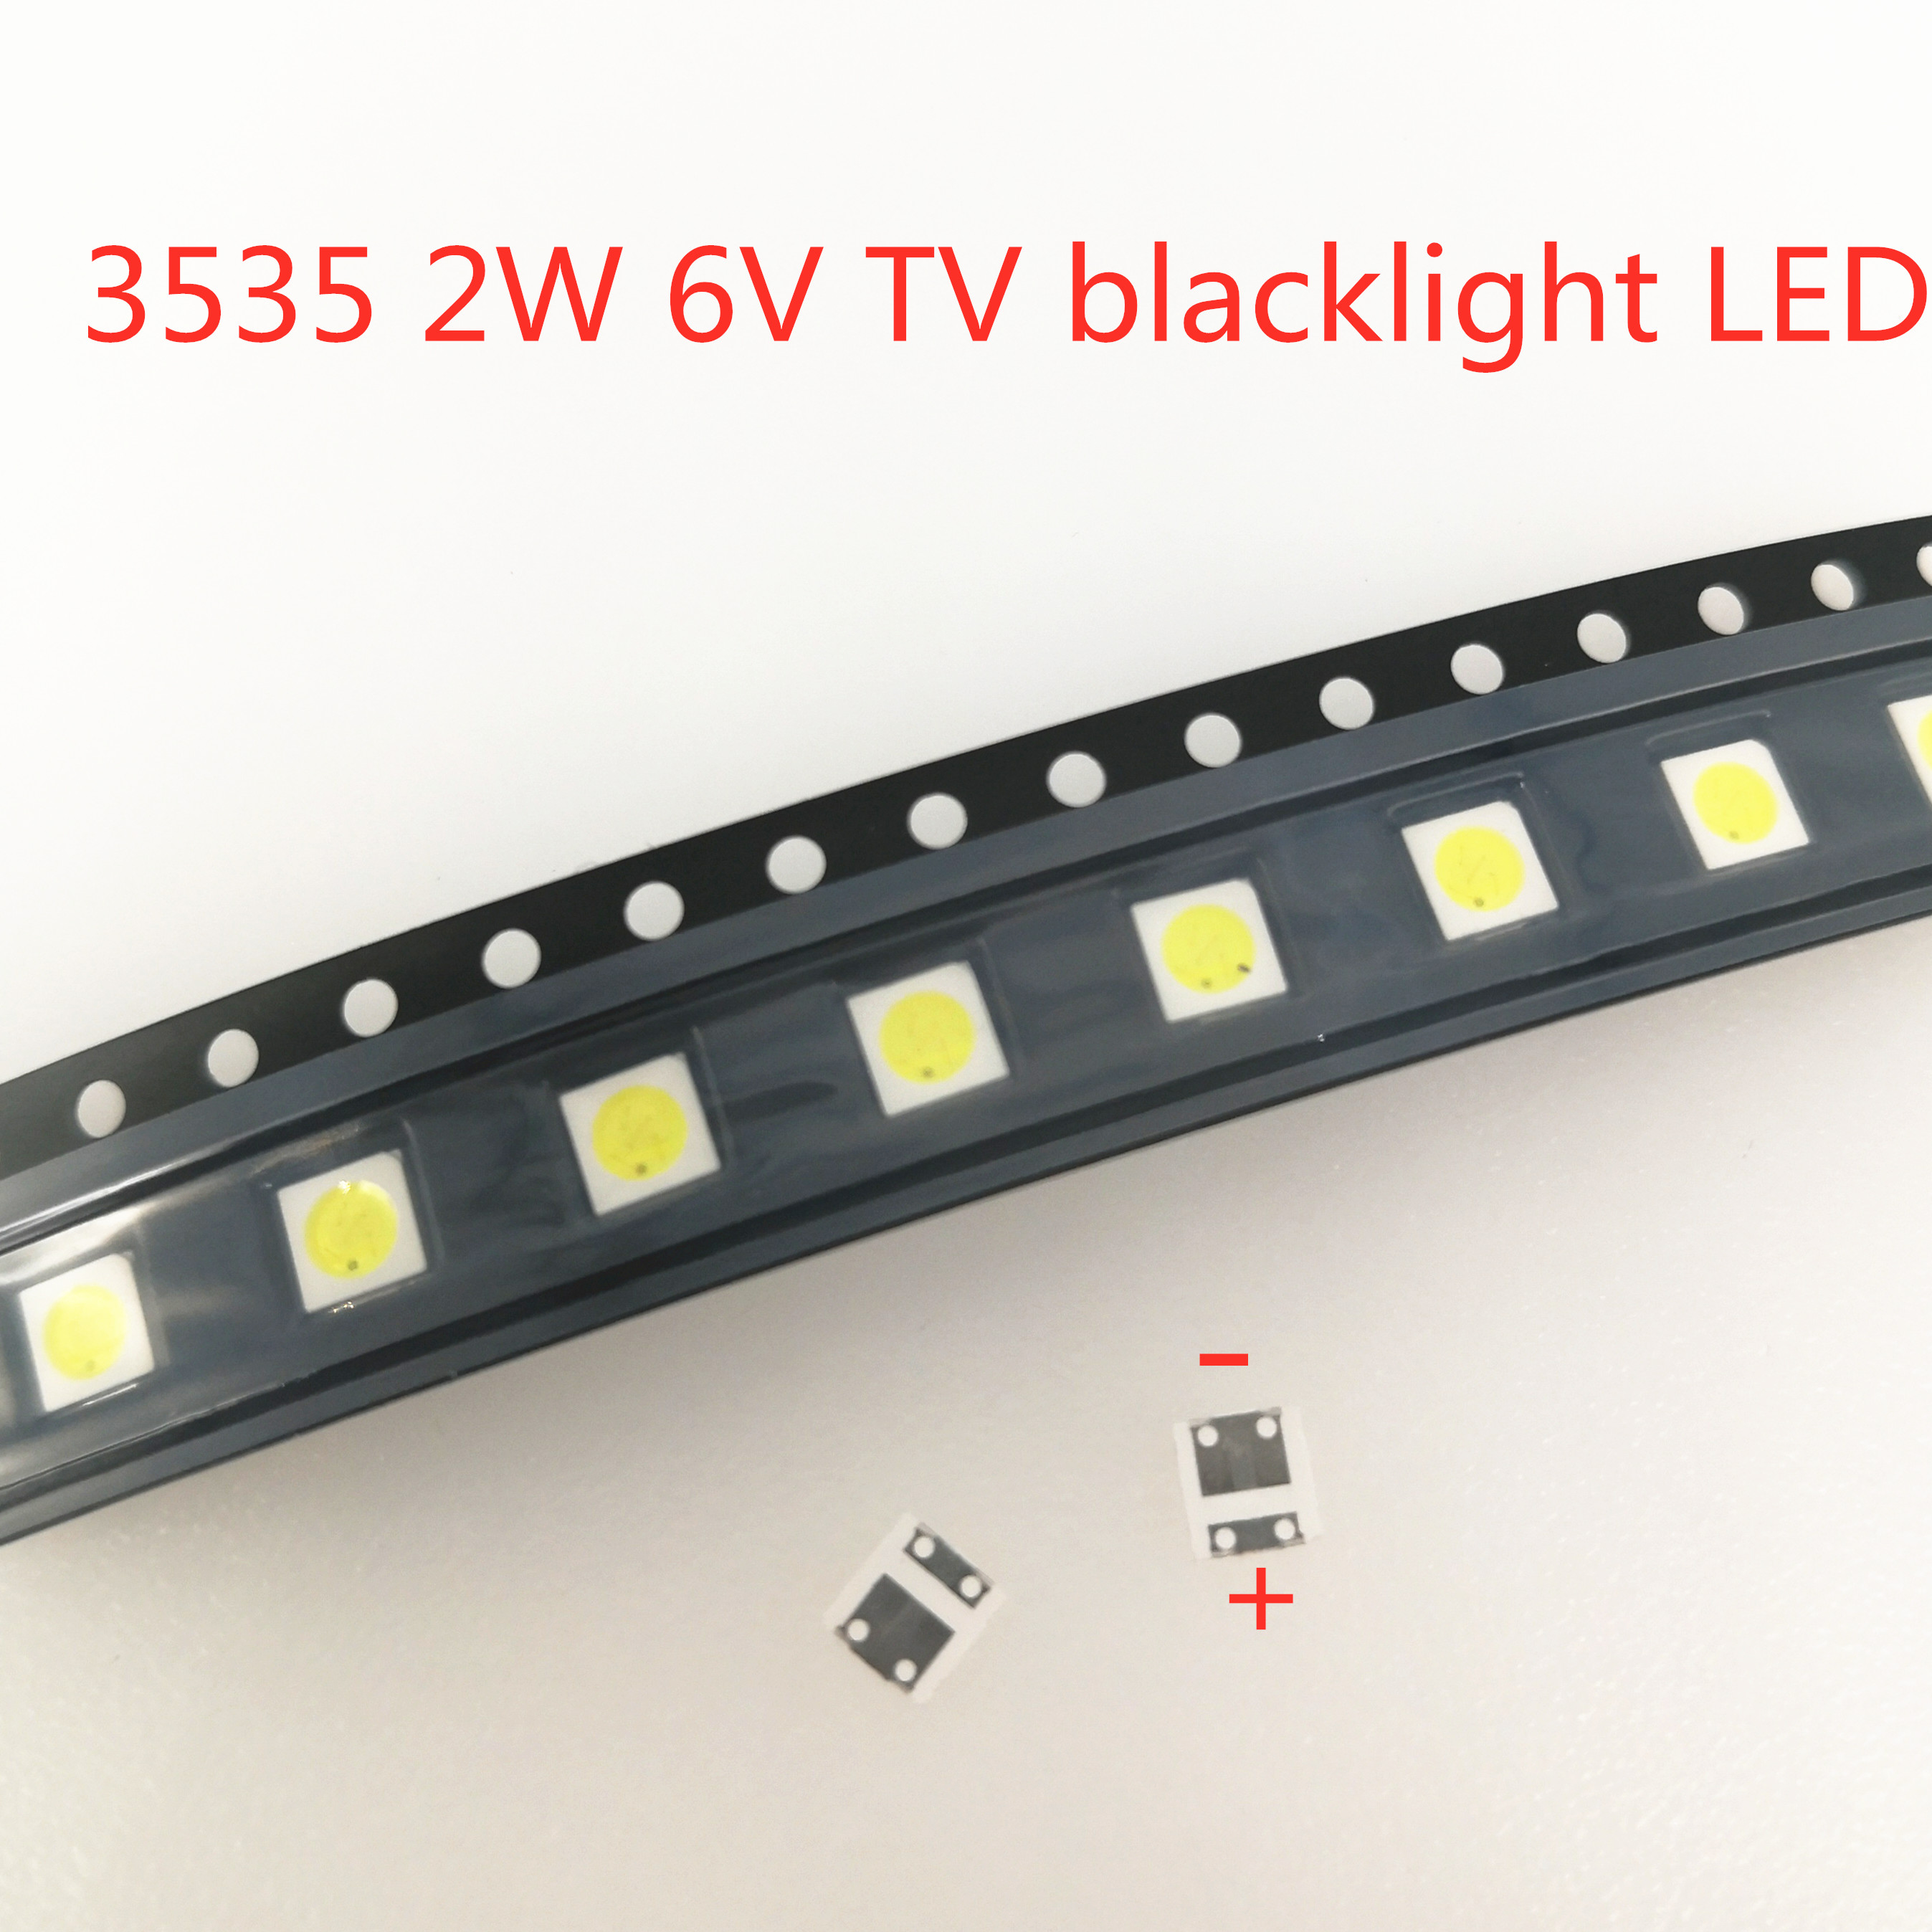 100pcs For LG Innotek LED New And  Original LED 2W 6V 3535 Cool White LCD Backlight For TV Application